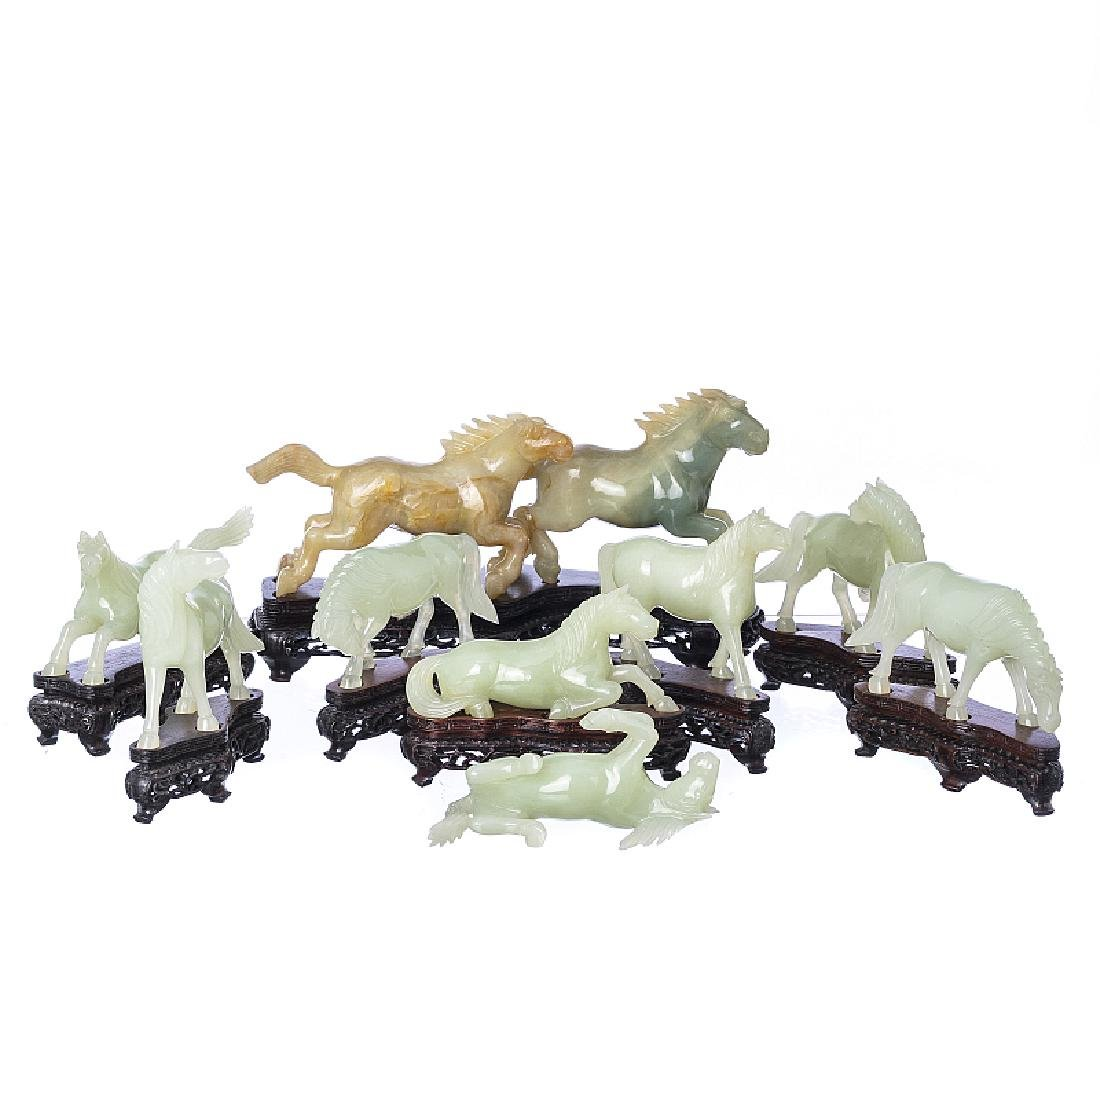 Ten horses in jade stone